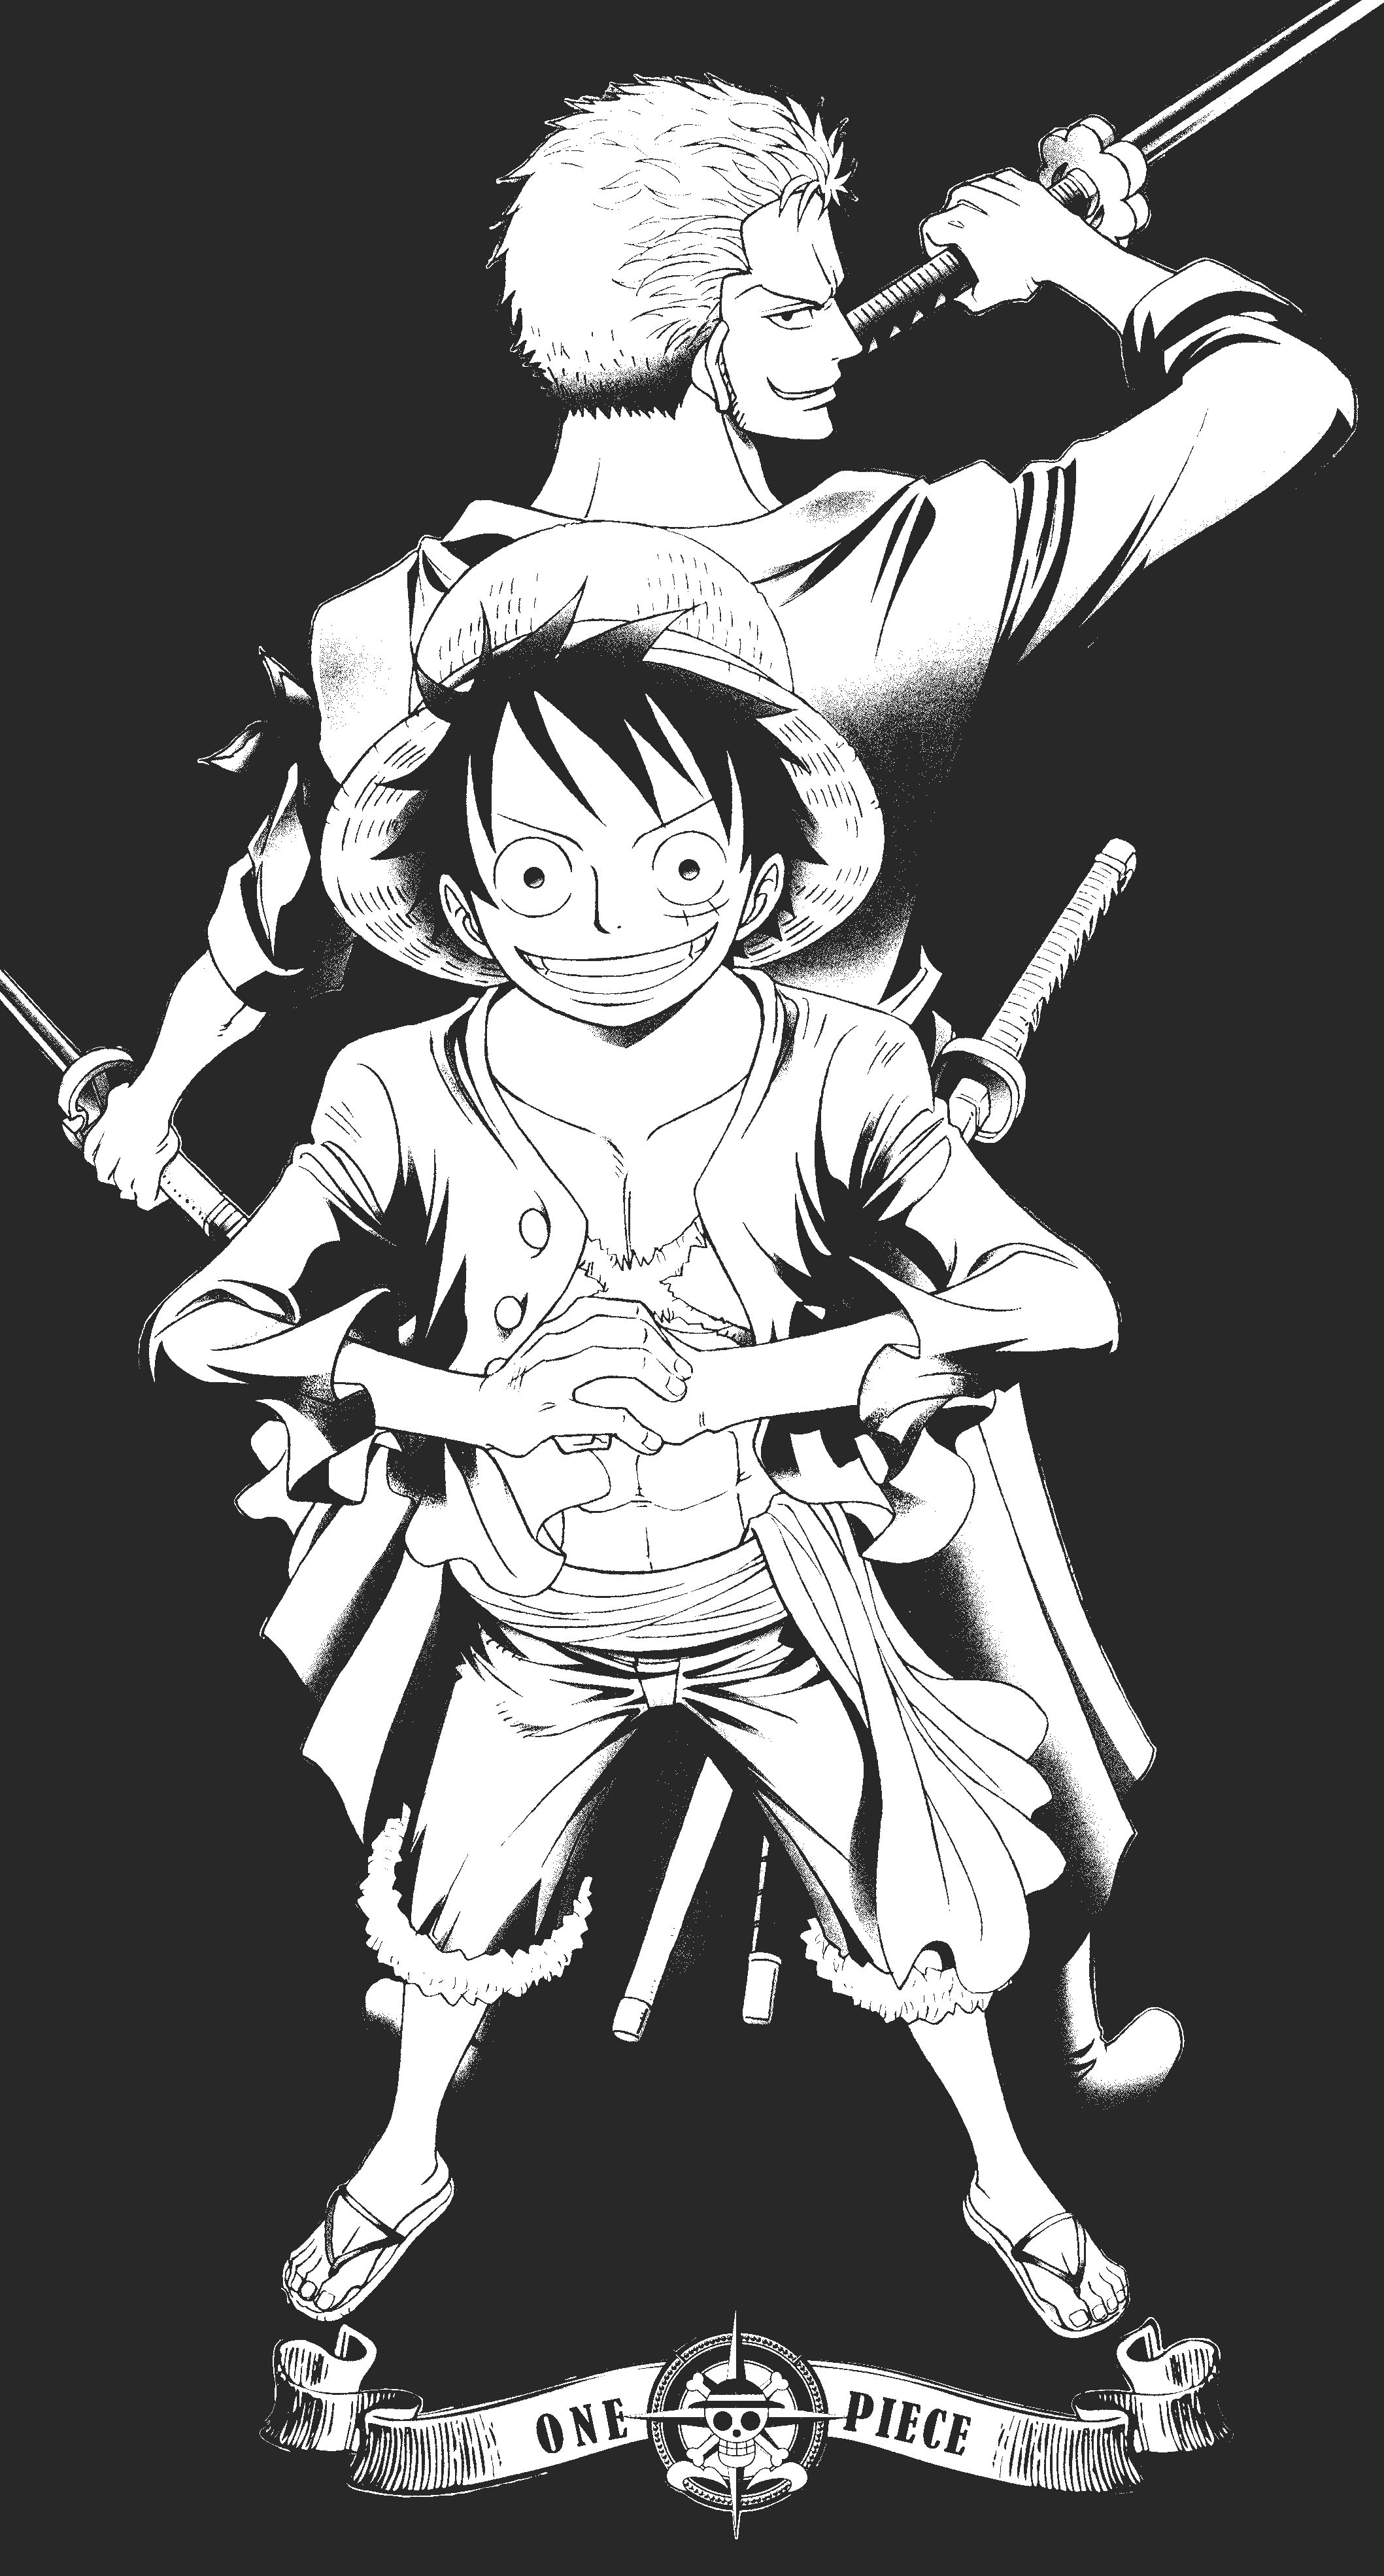 372 4k ultra hd one piece wallpapers background images. Luffy Black and White Wallpapers - Top Free Luffy Black ...